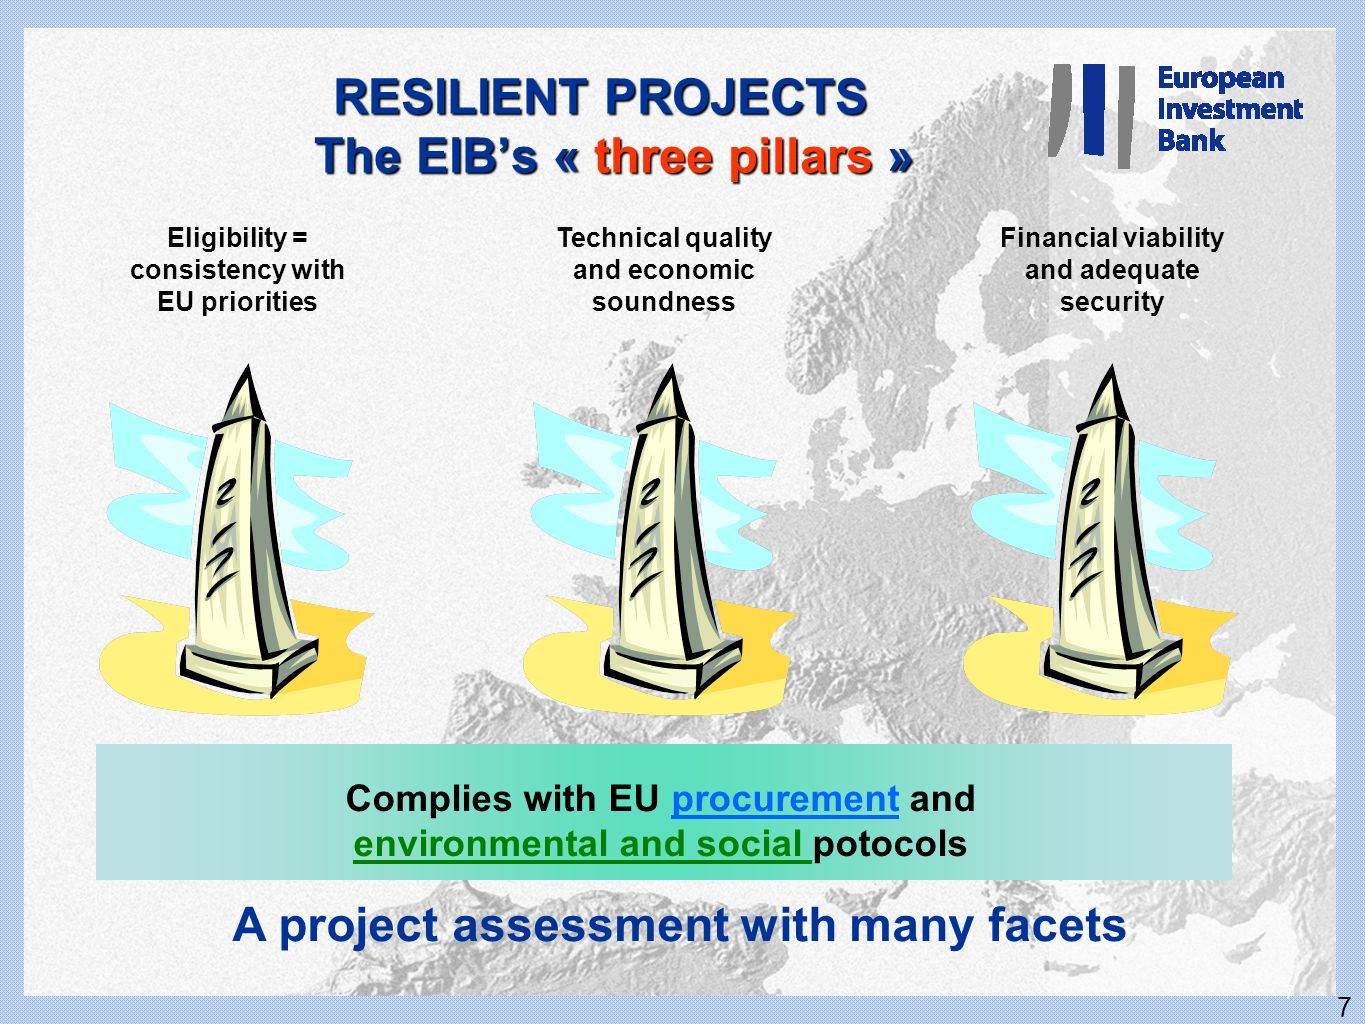 8 EIB FINANCING THE URBAN SECTOR Eligibility areas and priorities RatingLowMediumHigh Urban renewal and regeneration including social and affordable housing Upgrading, replacement and reorganisation of urban infrastructure and public facilities Acquisition of buildings for social or public usage, including housing Other social and affordable housing projects (including related infrastructure) Other investments in public buildings Investments with key focus in energy efficiency (including housing and related infrastructure) Upgrading / construction of housing to alleviate poverty and social exclusion, Redevelopment / conversion of former industrial sites Investment in heritage sites and rehabilitation of buildings of architectural value.